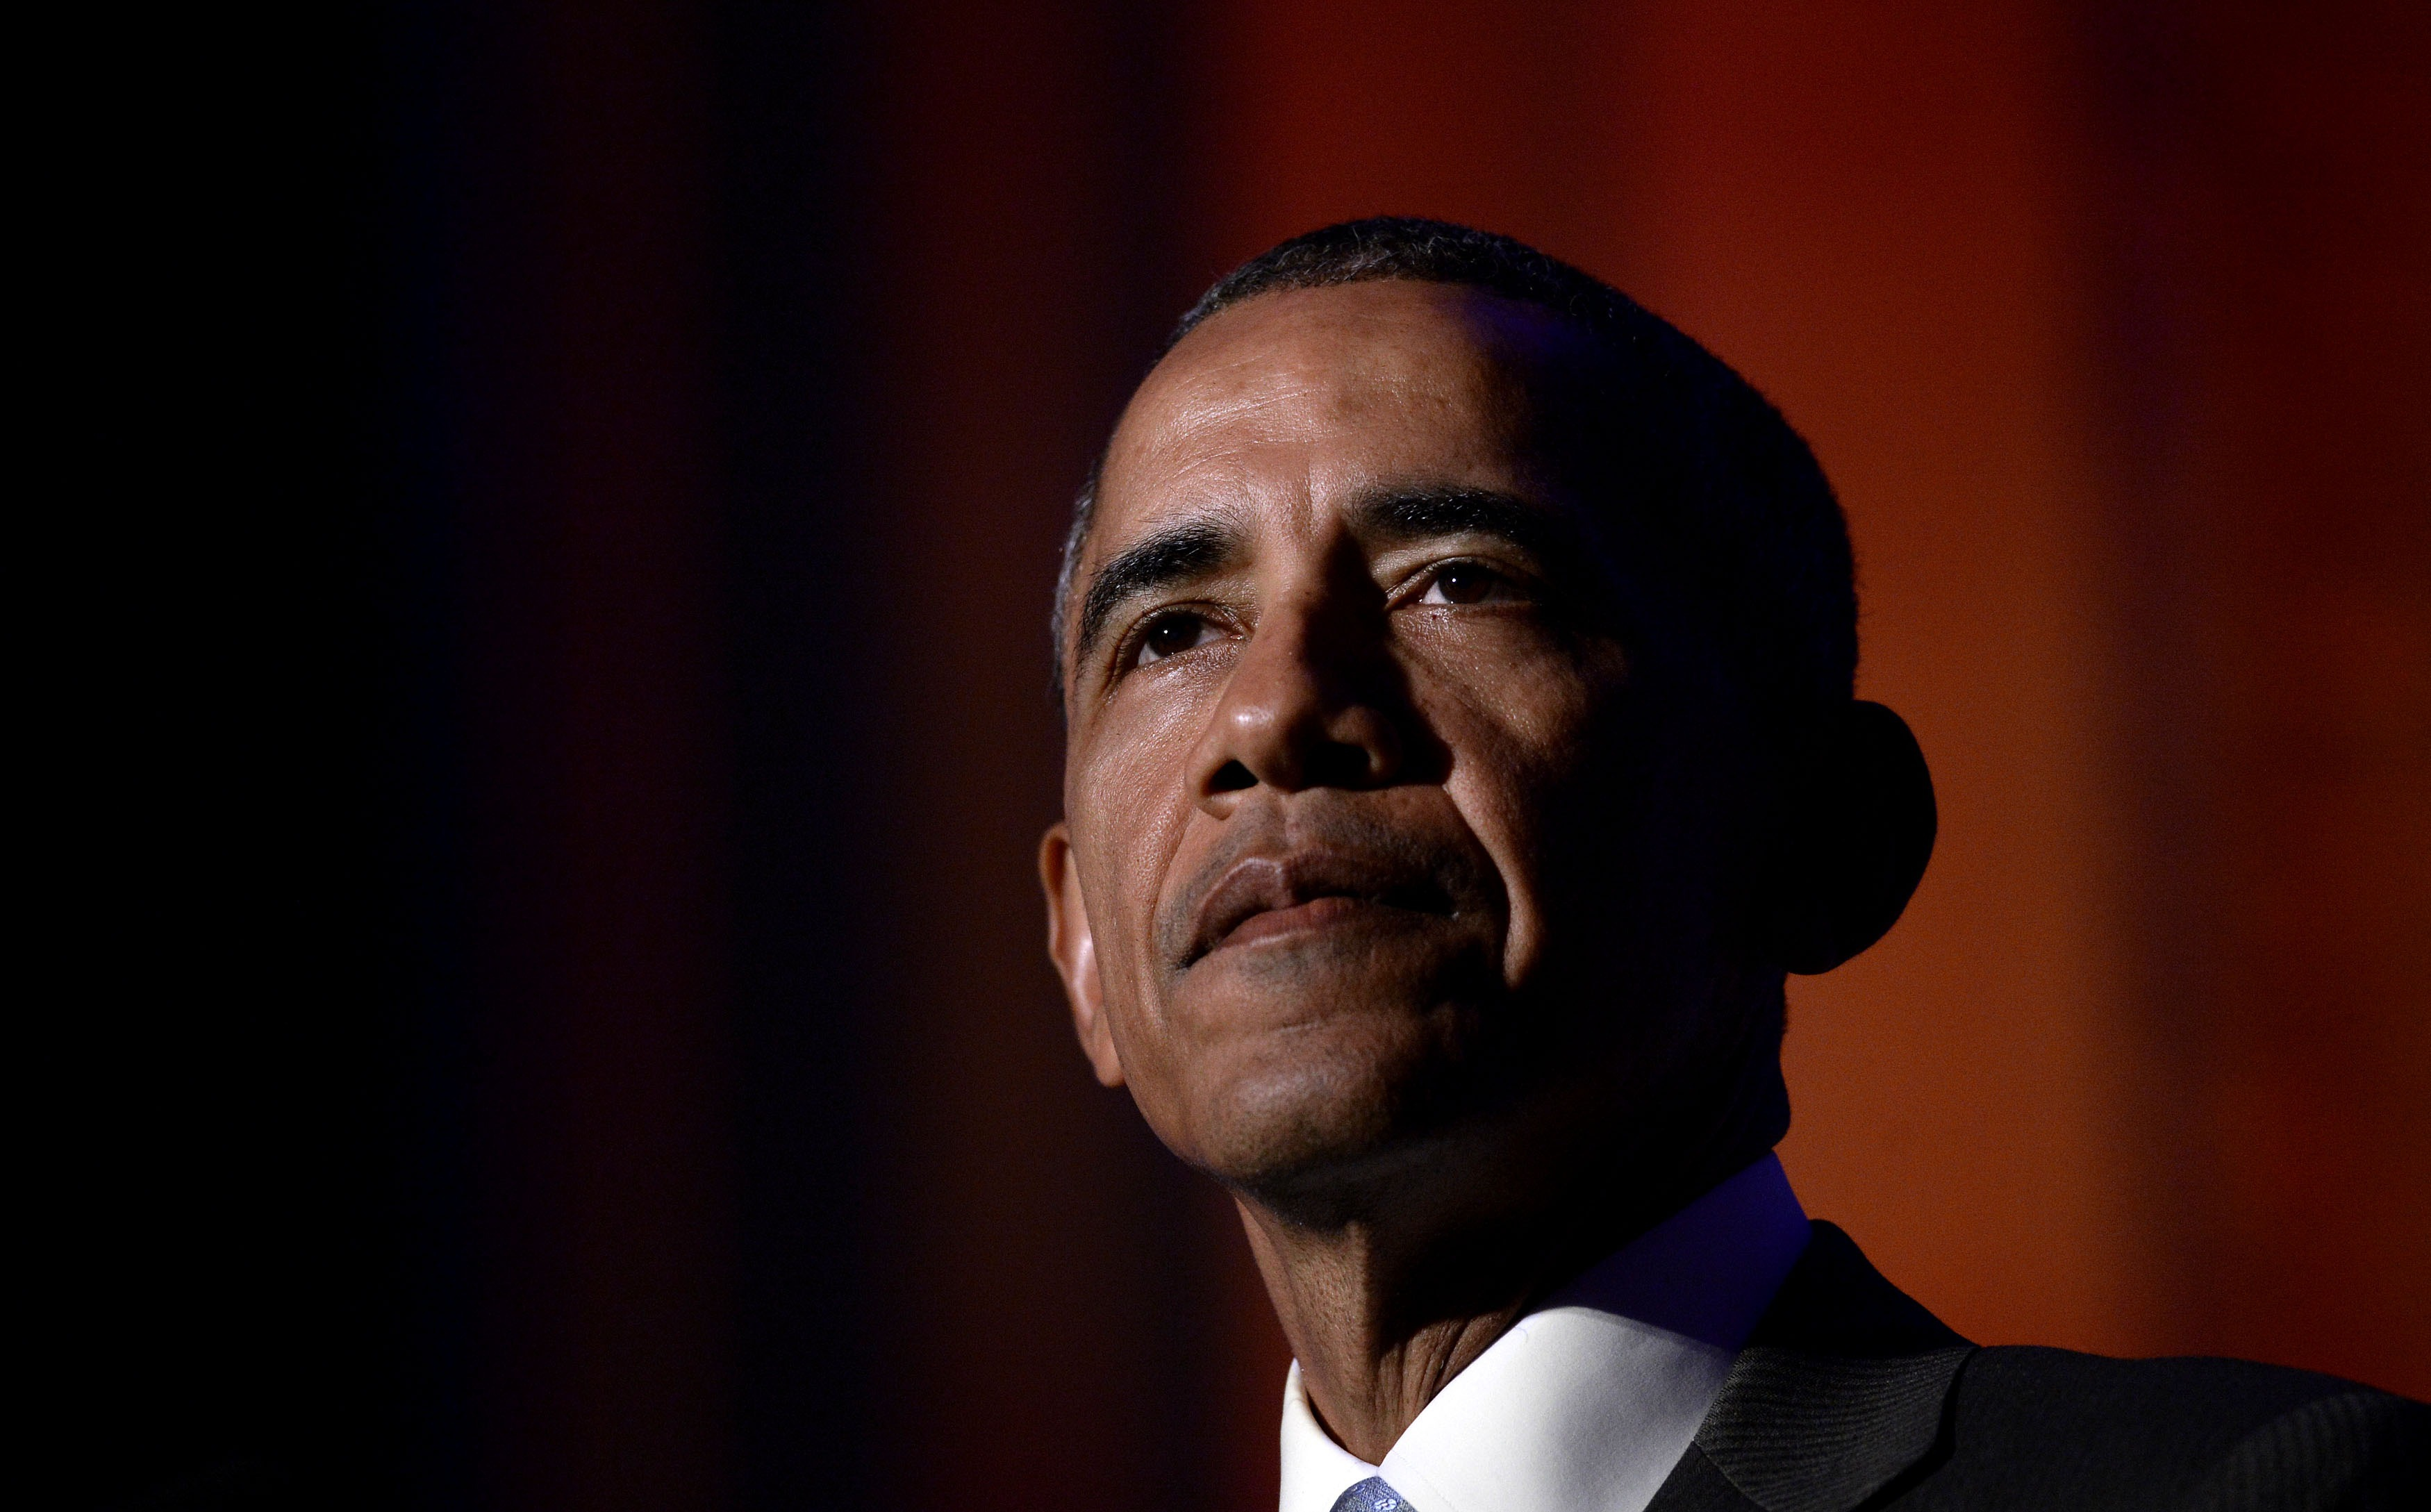 U.S. President Barack Obama delivers the keynote address at the awards dinner for Syracuse University's Toner Prize for Excellence in Political Reporting at the Andrew W. Mellon Auditorium in Washington, D.C., on March 28, 2016.